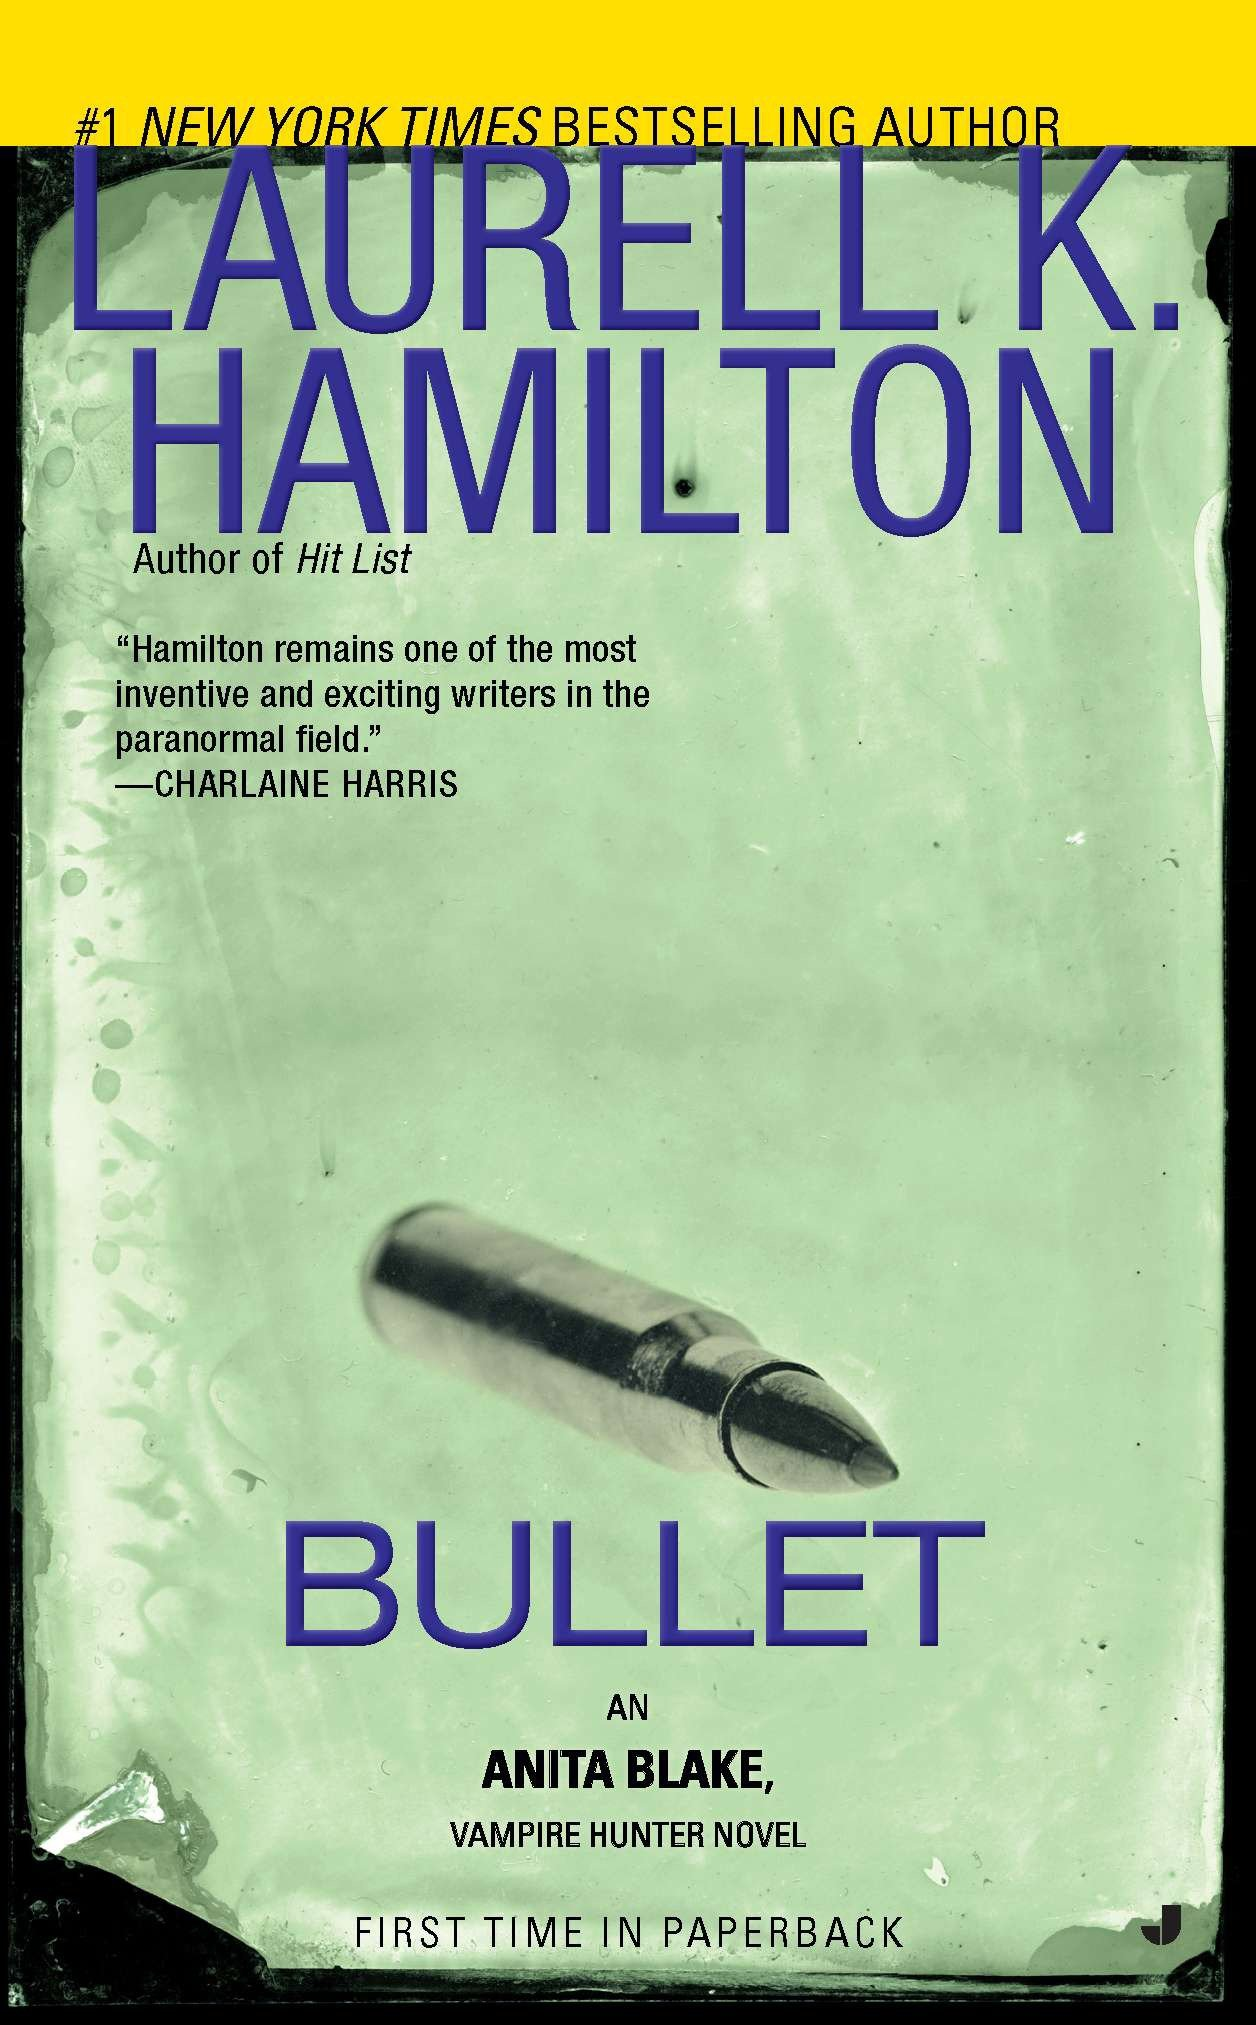 Bullet cover image